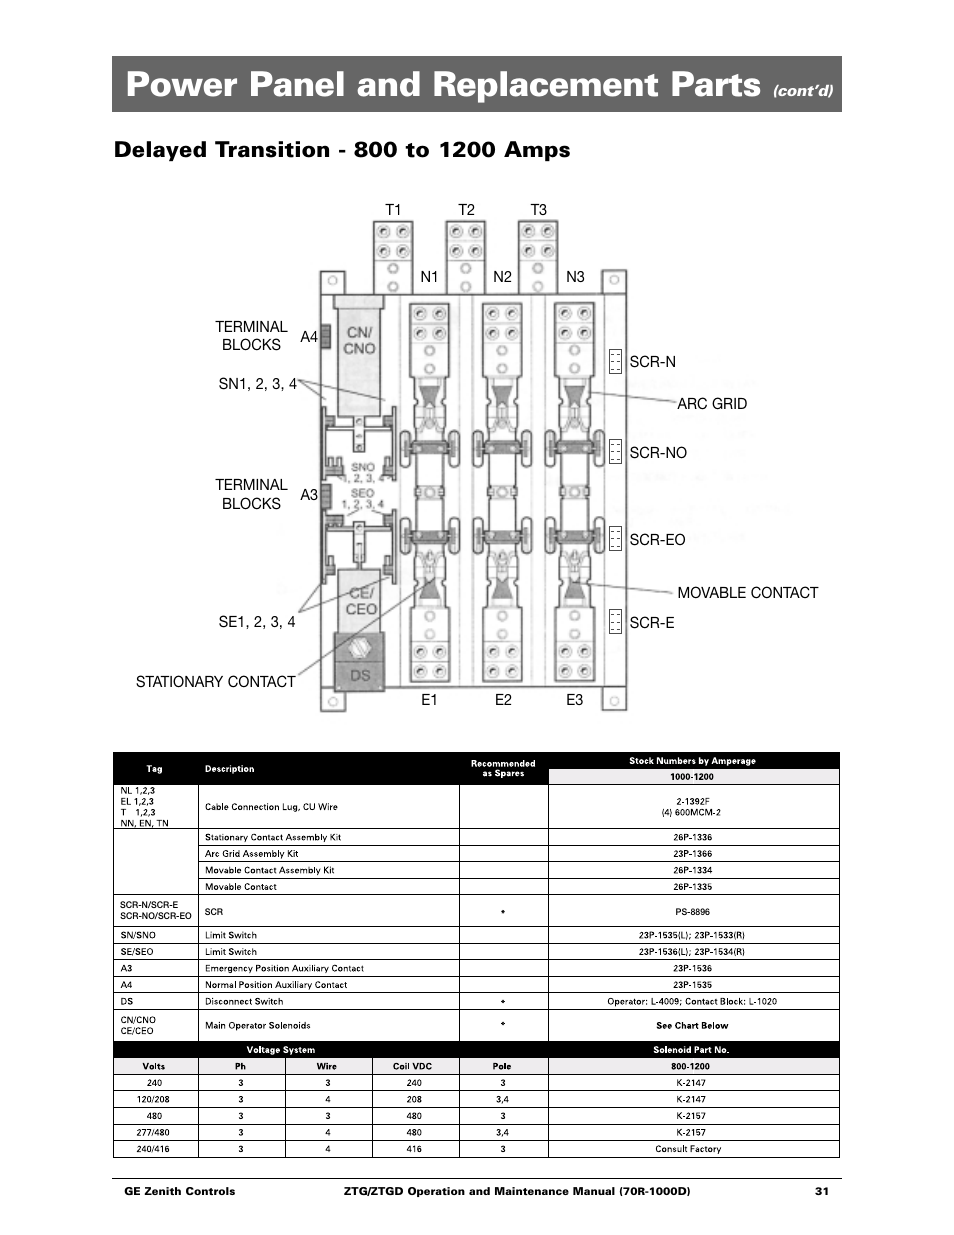 Zenith Ztg Transfer Switch Wiring Diagram Residential Ztx20mx60 Ge Automatic 200a Power Panel And Replacement Parts Ztgd Series Switches Manual